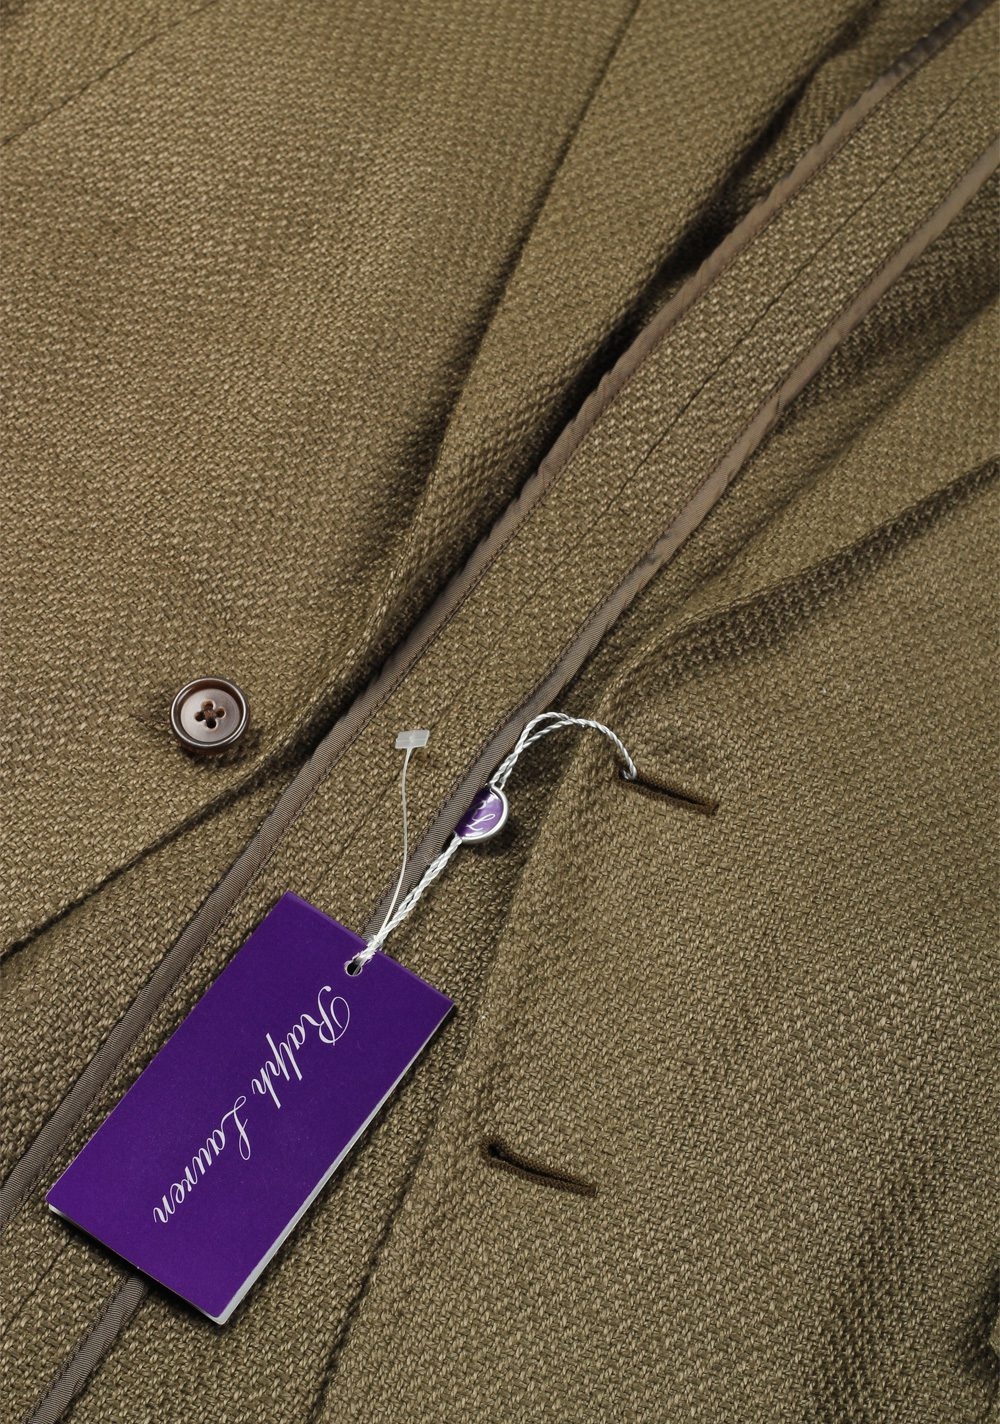 Ralph Lauren Purple Label Sport Coat Size 54 / 44R U.S. | Costume Limité